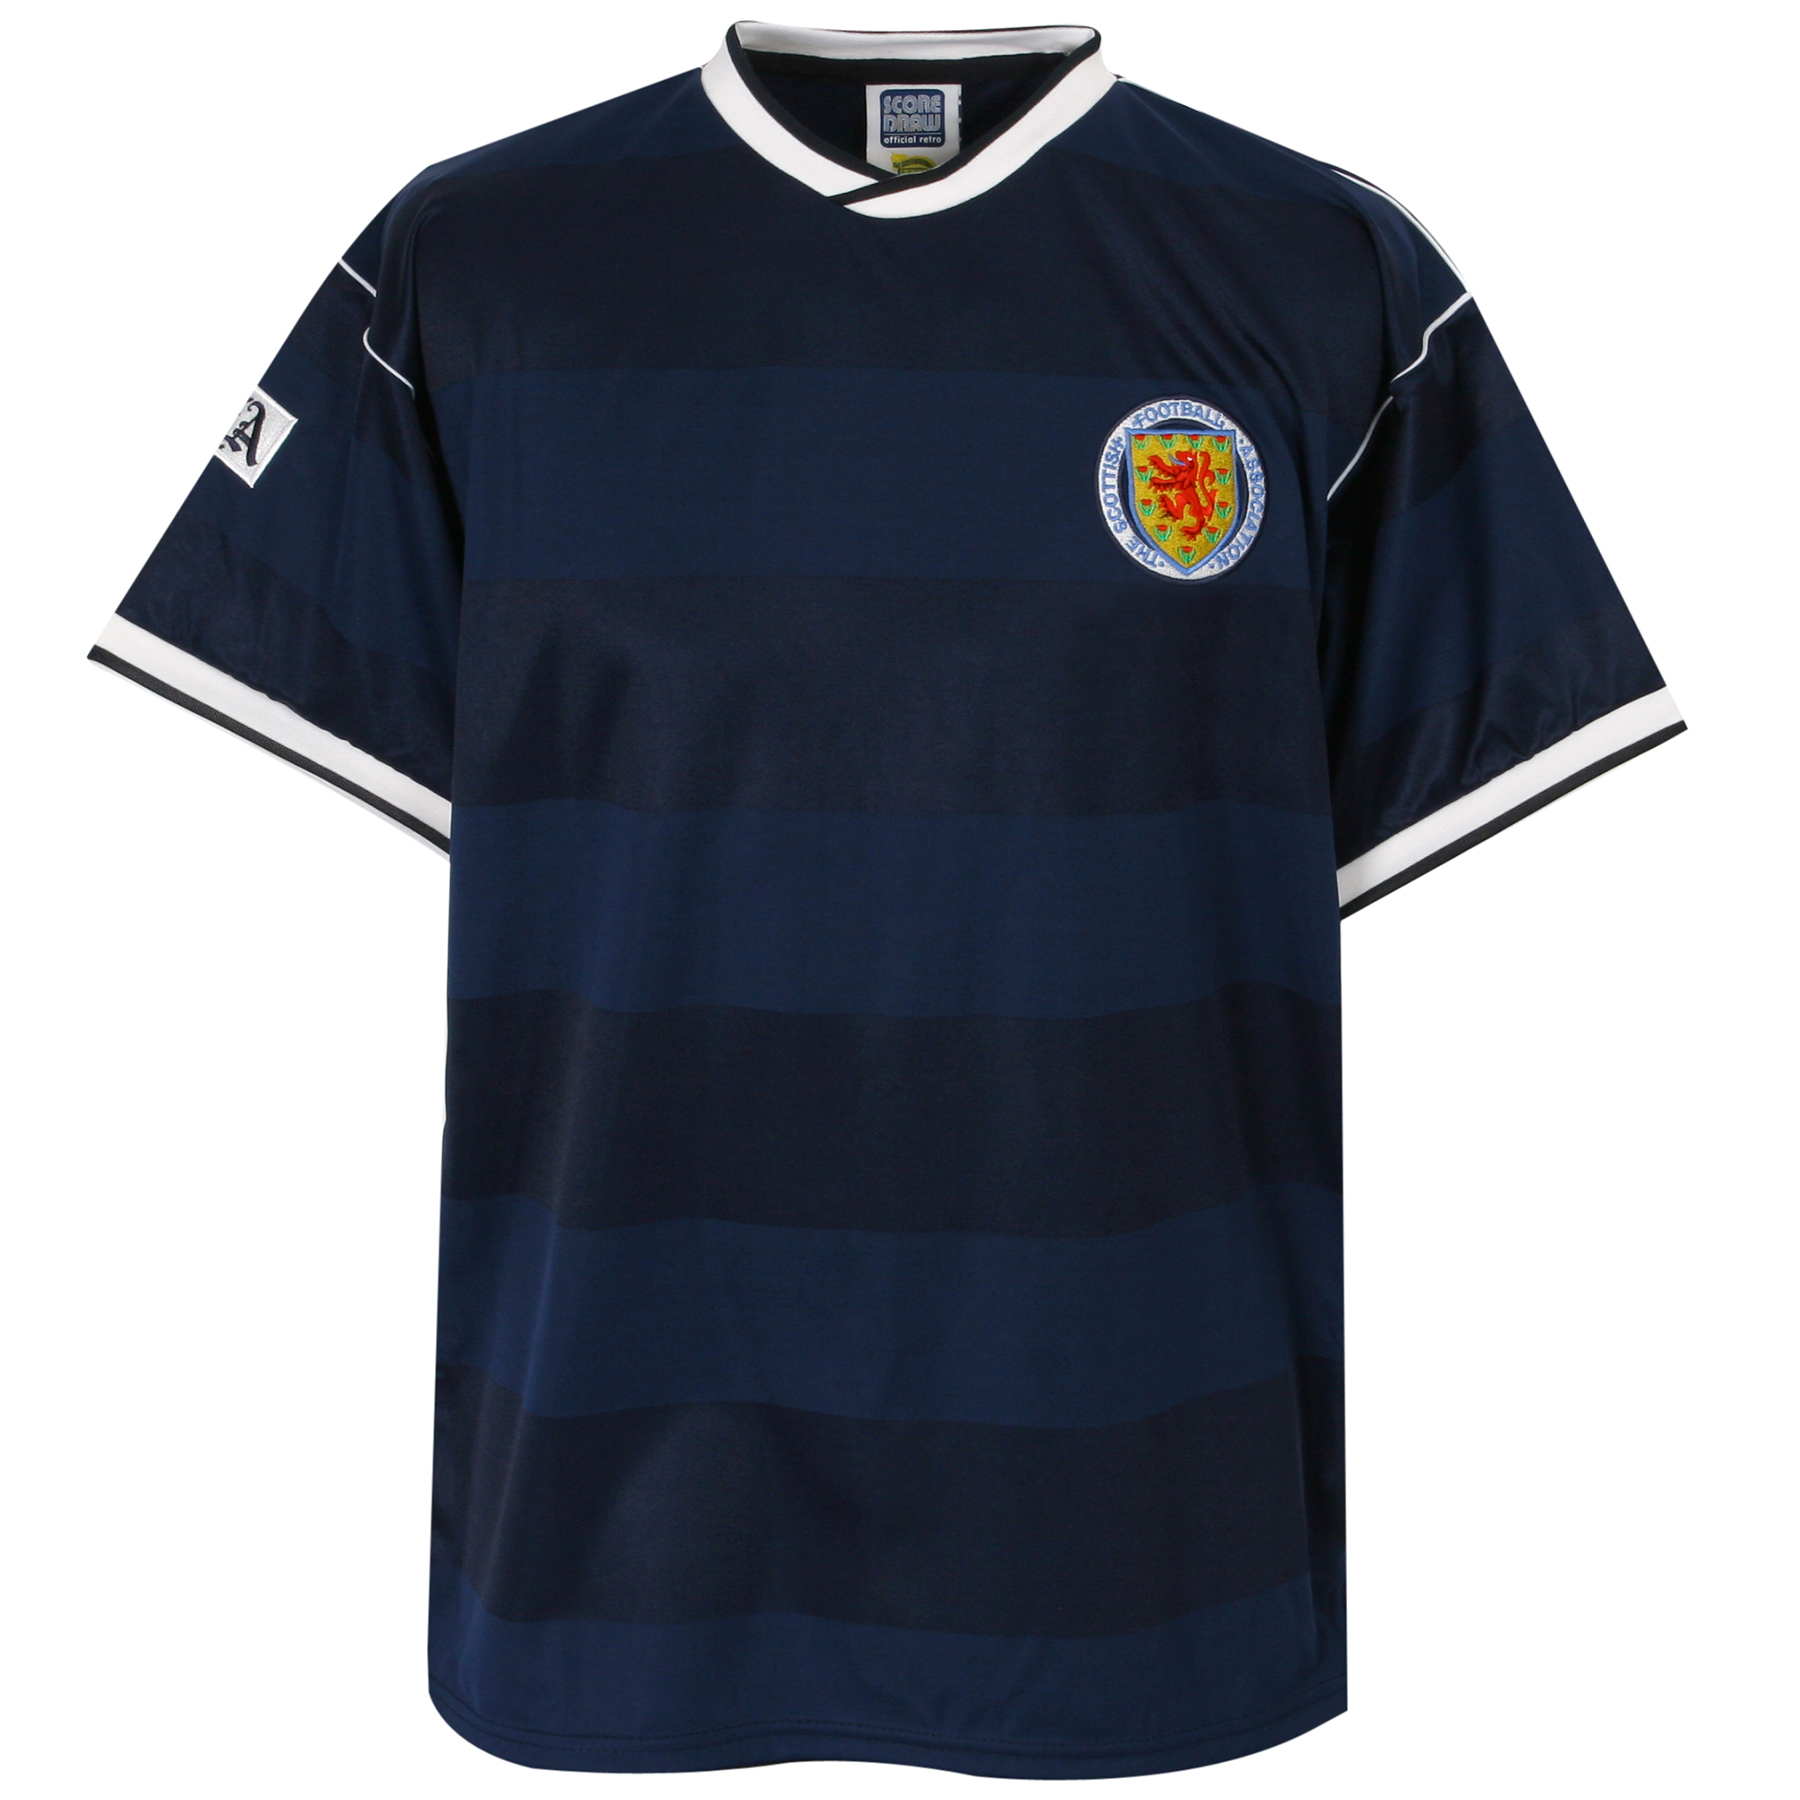 Scotland 1986 World Cup Retro Shirt